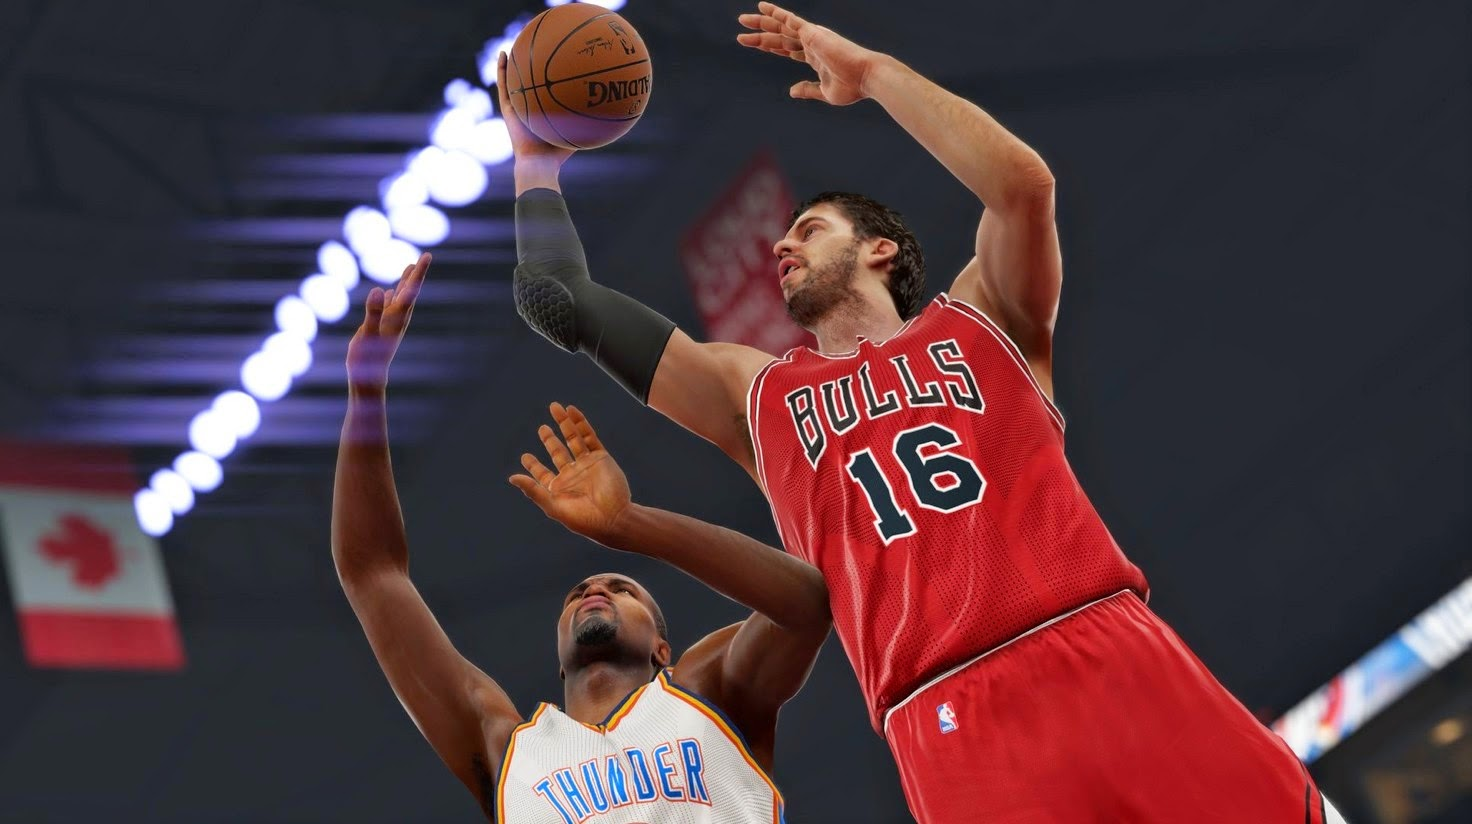 NBA 2K15 Player Ratings Revealed #50 - #31